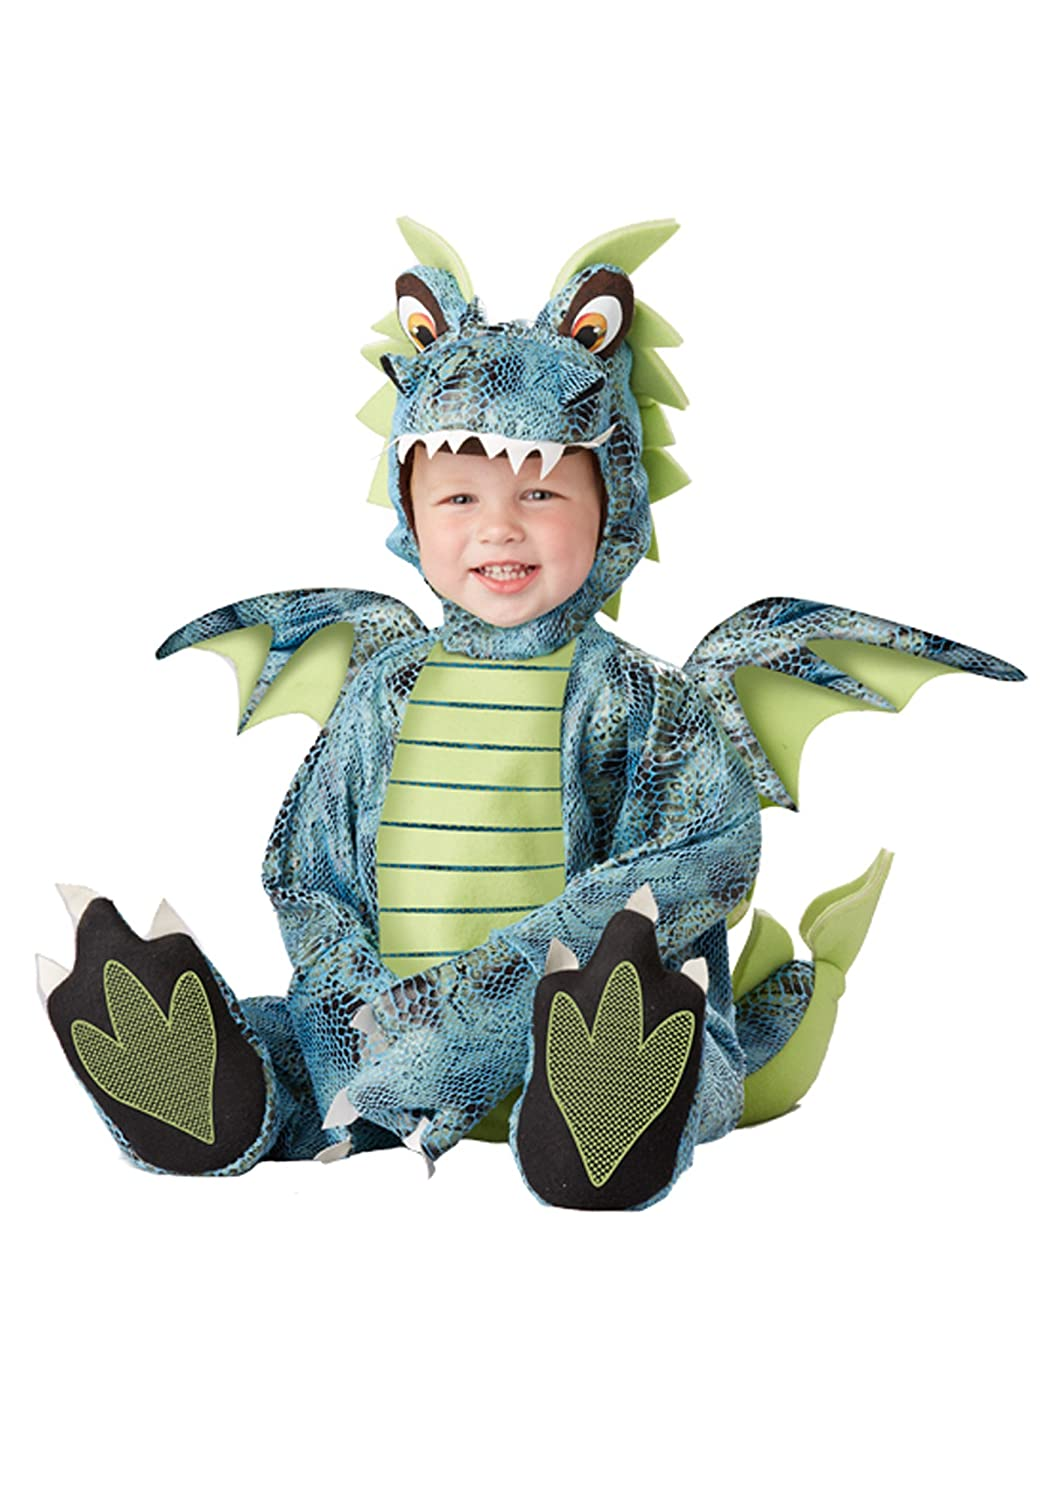 California Costumes Darling Dragon Infant 10024BBY